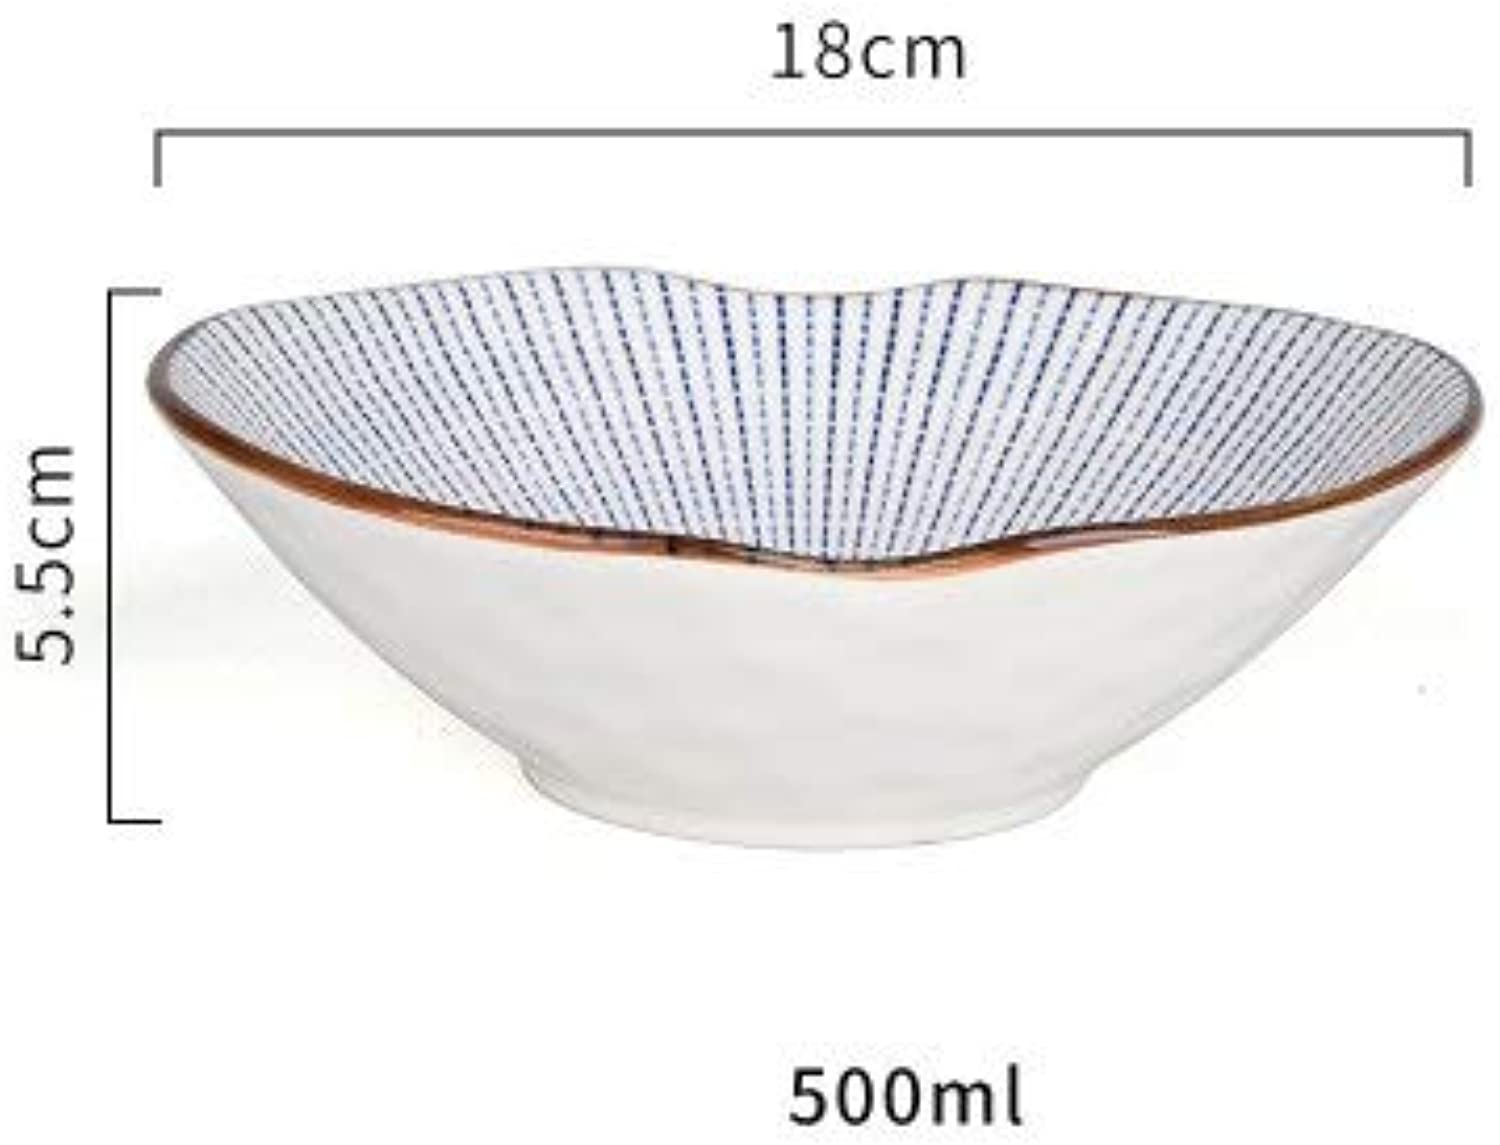 Zoomy far Japanese Style Heng FENG Ceramic Tableware Smed R Bowl Sauce Dish Soup Bowl Fish Plate procelain Sushi Plate   7inch Bowl